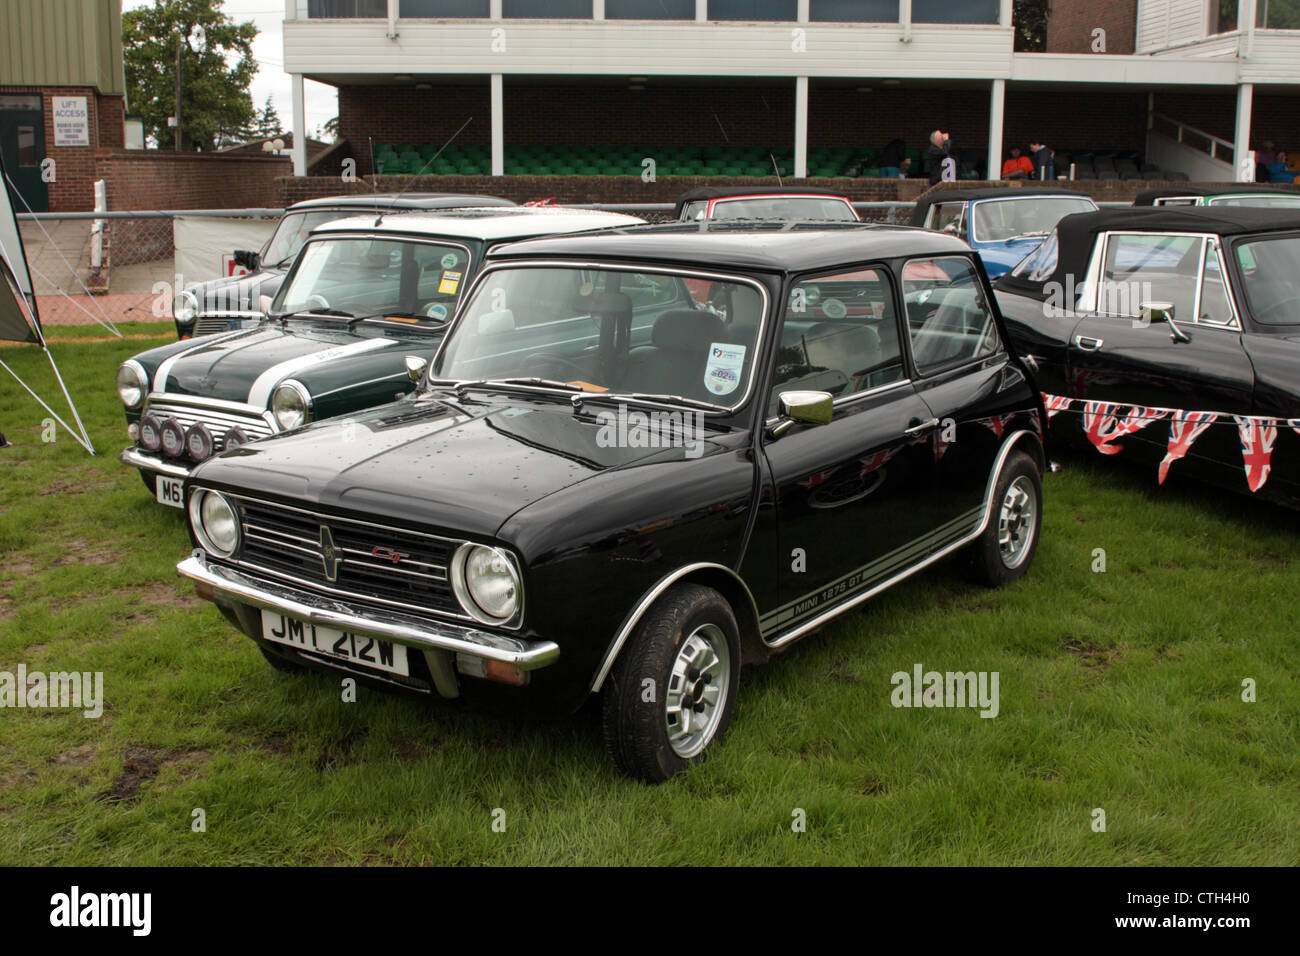 British Leyland Mini 1275GT - Stock Image